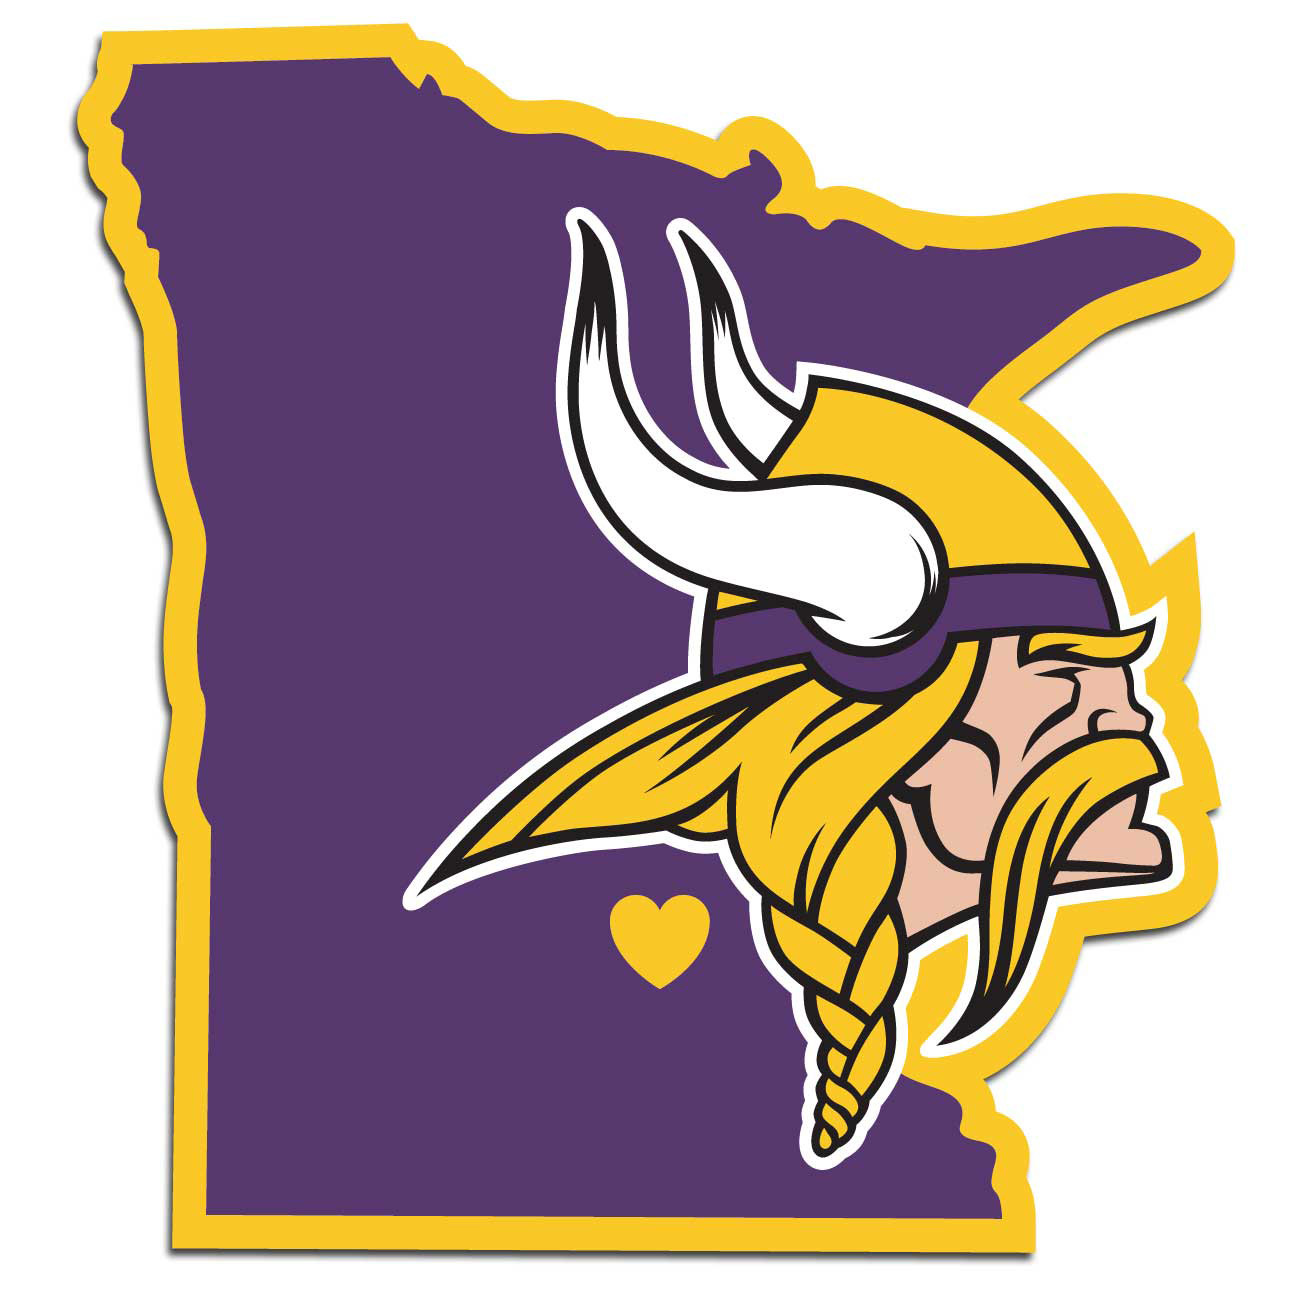 Minnesota Vikings Clipart Group with 72+ items.